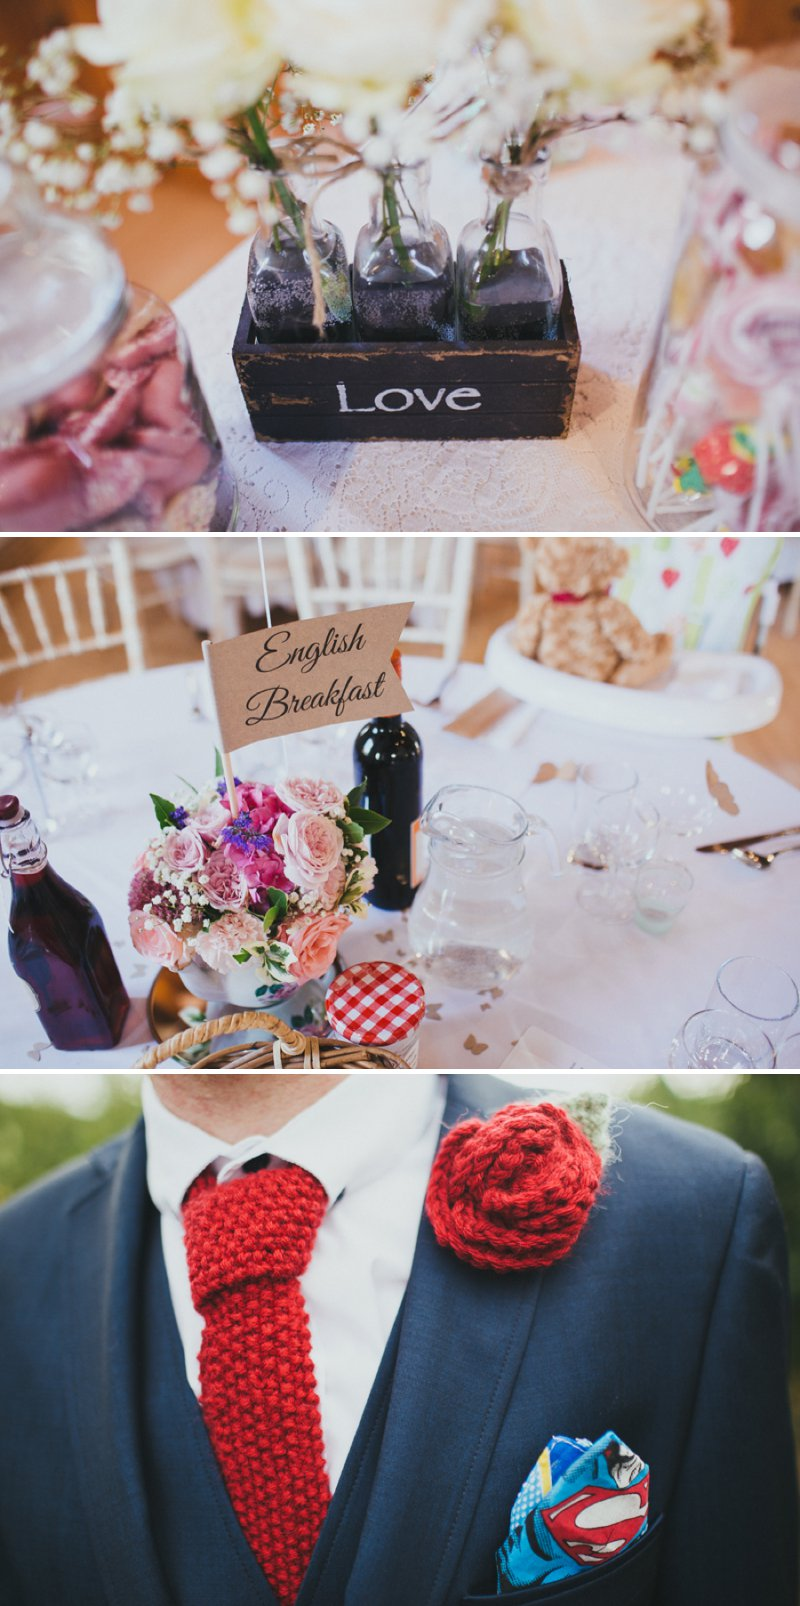 Vintage Inspired DIY Wedding At Kingston Village Hall With Bride In 50s Style Tea Length Gown And Groom In Topman Suit With Red Shoes And Knitted Bouquets, Ties And Corsages With Fete Games And A Coconut Shy 8